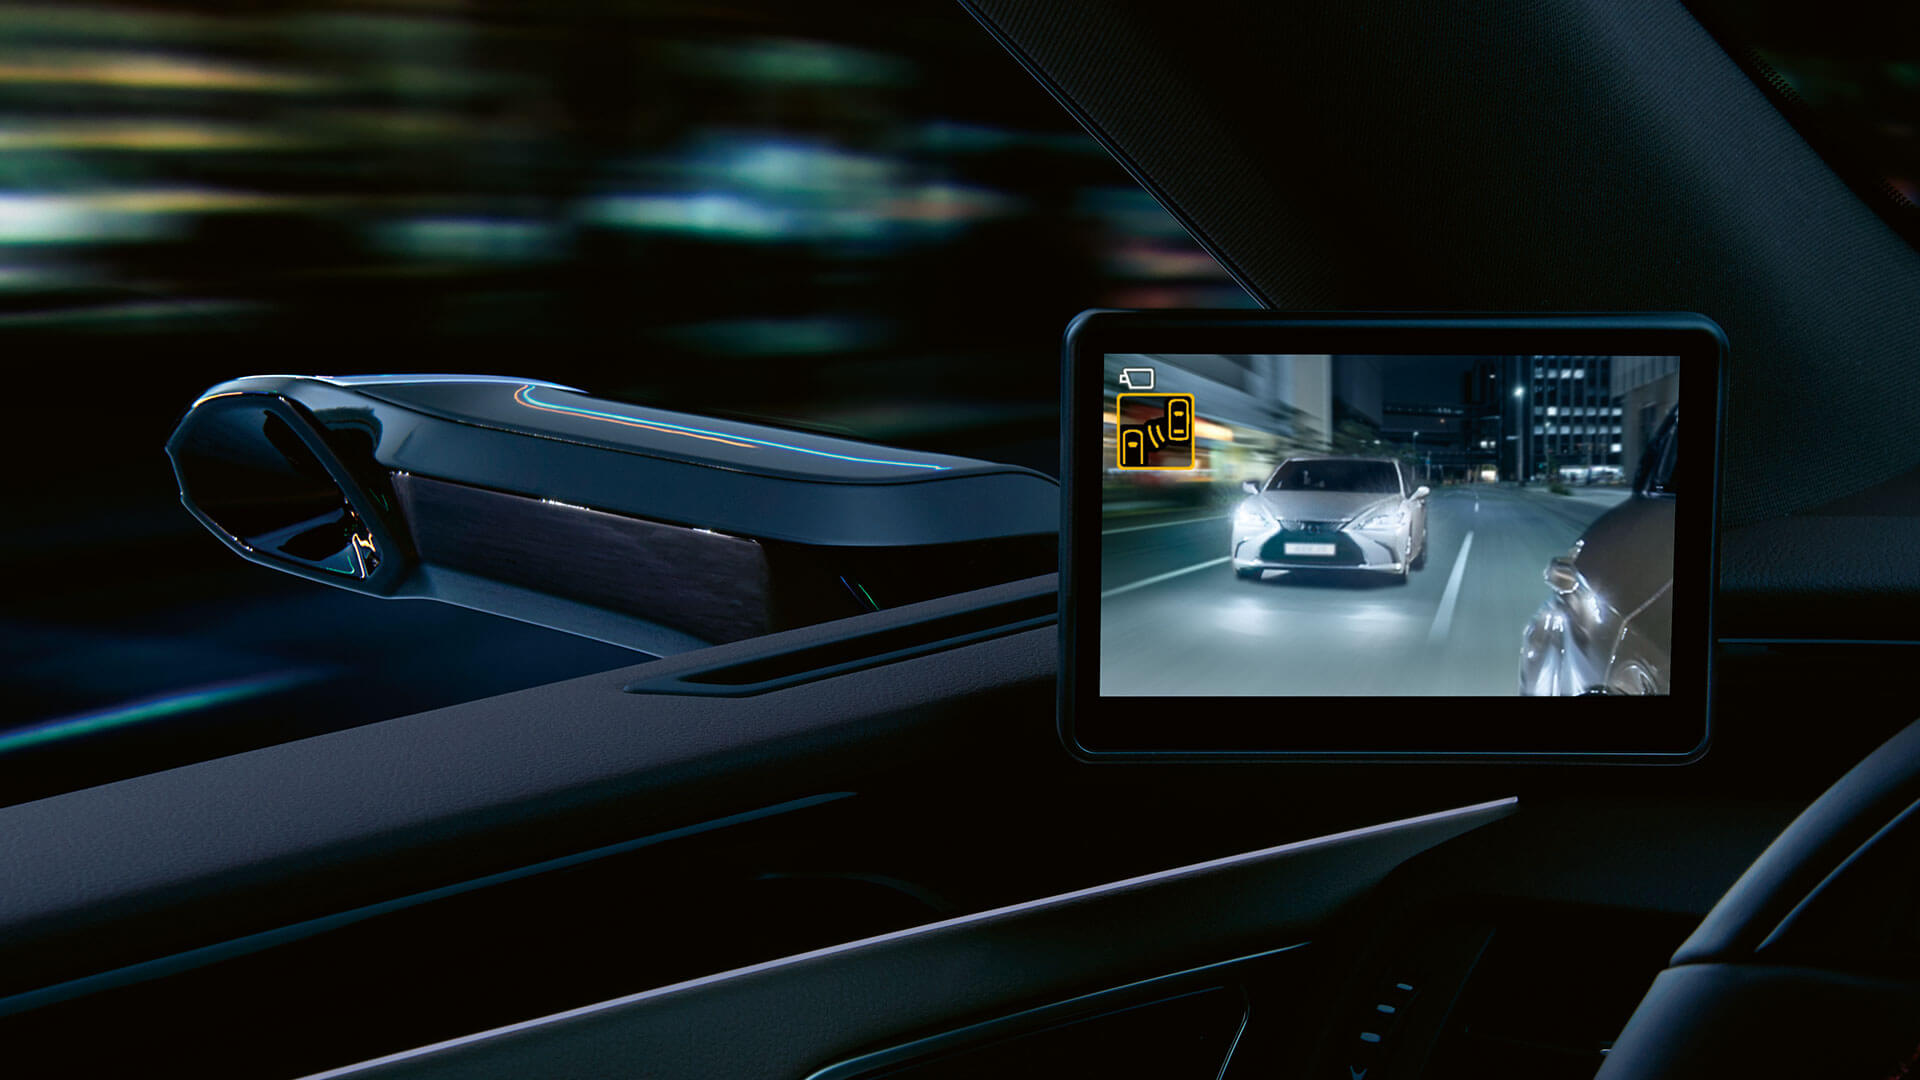 2020 lexus es gallery digital mirror 03